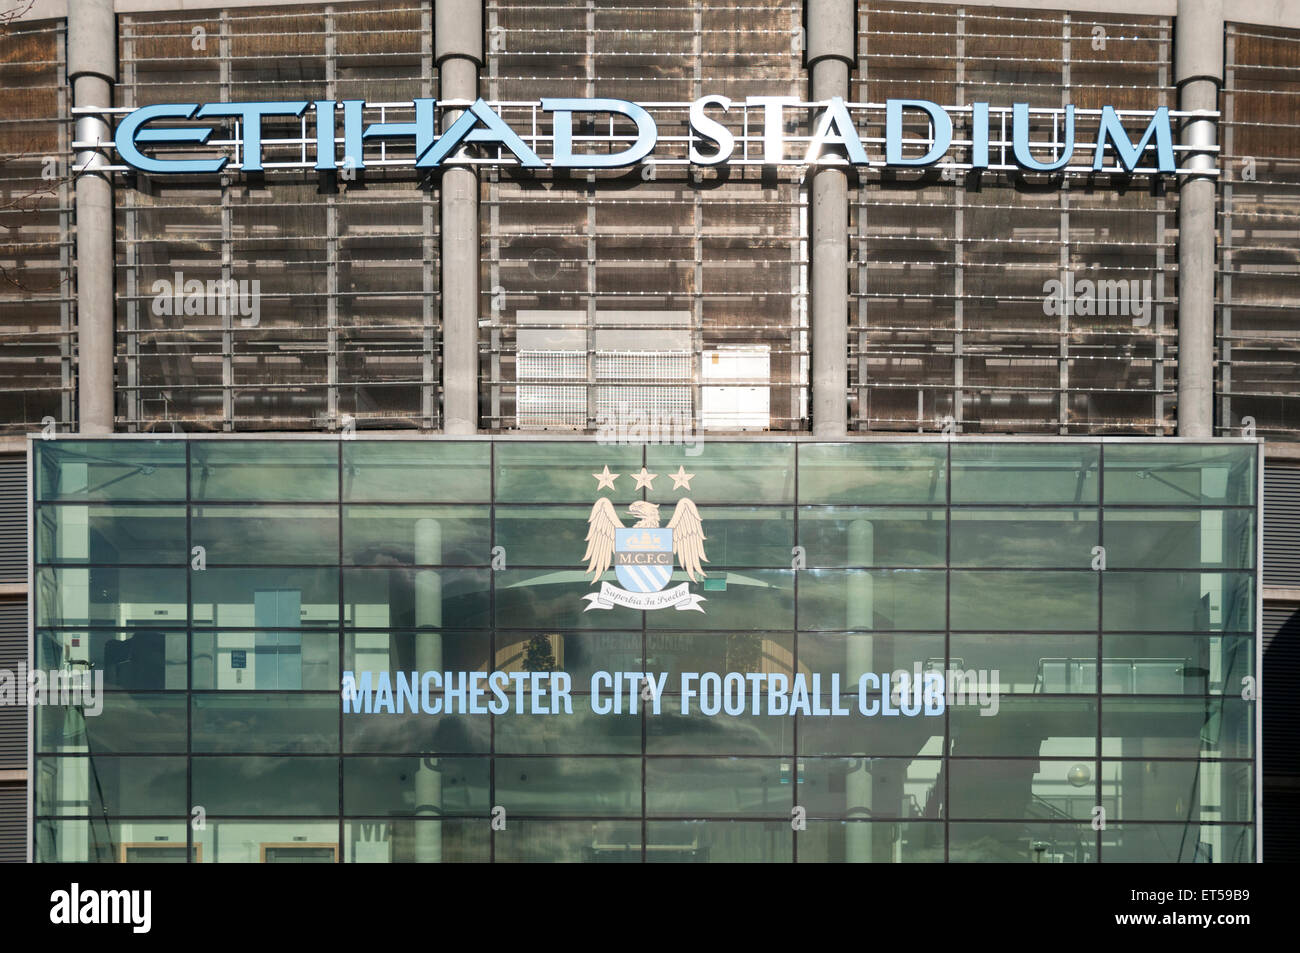 Signs above one of the entrances to the Etihad Stadium, Etihad Campus, Manchester, England, UK - Stock Image